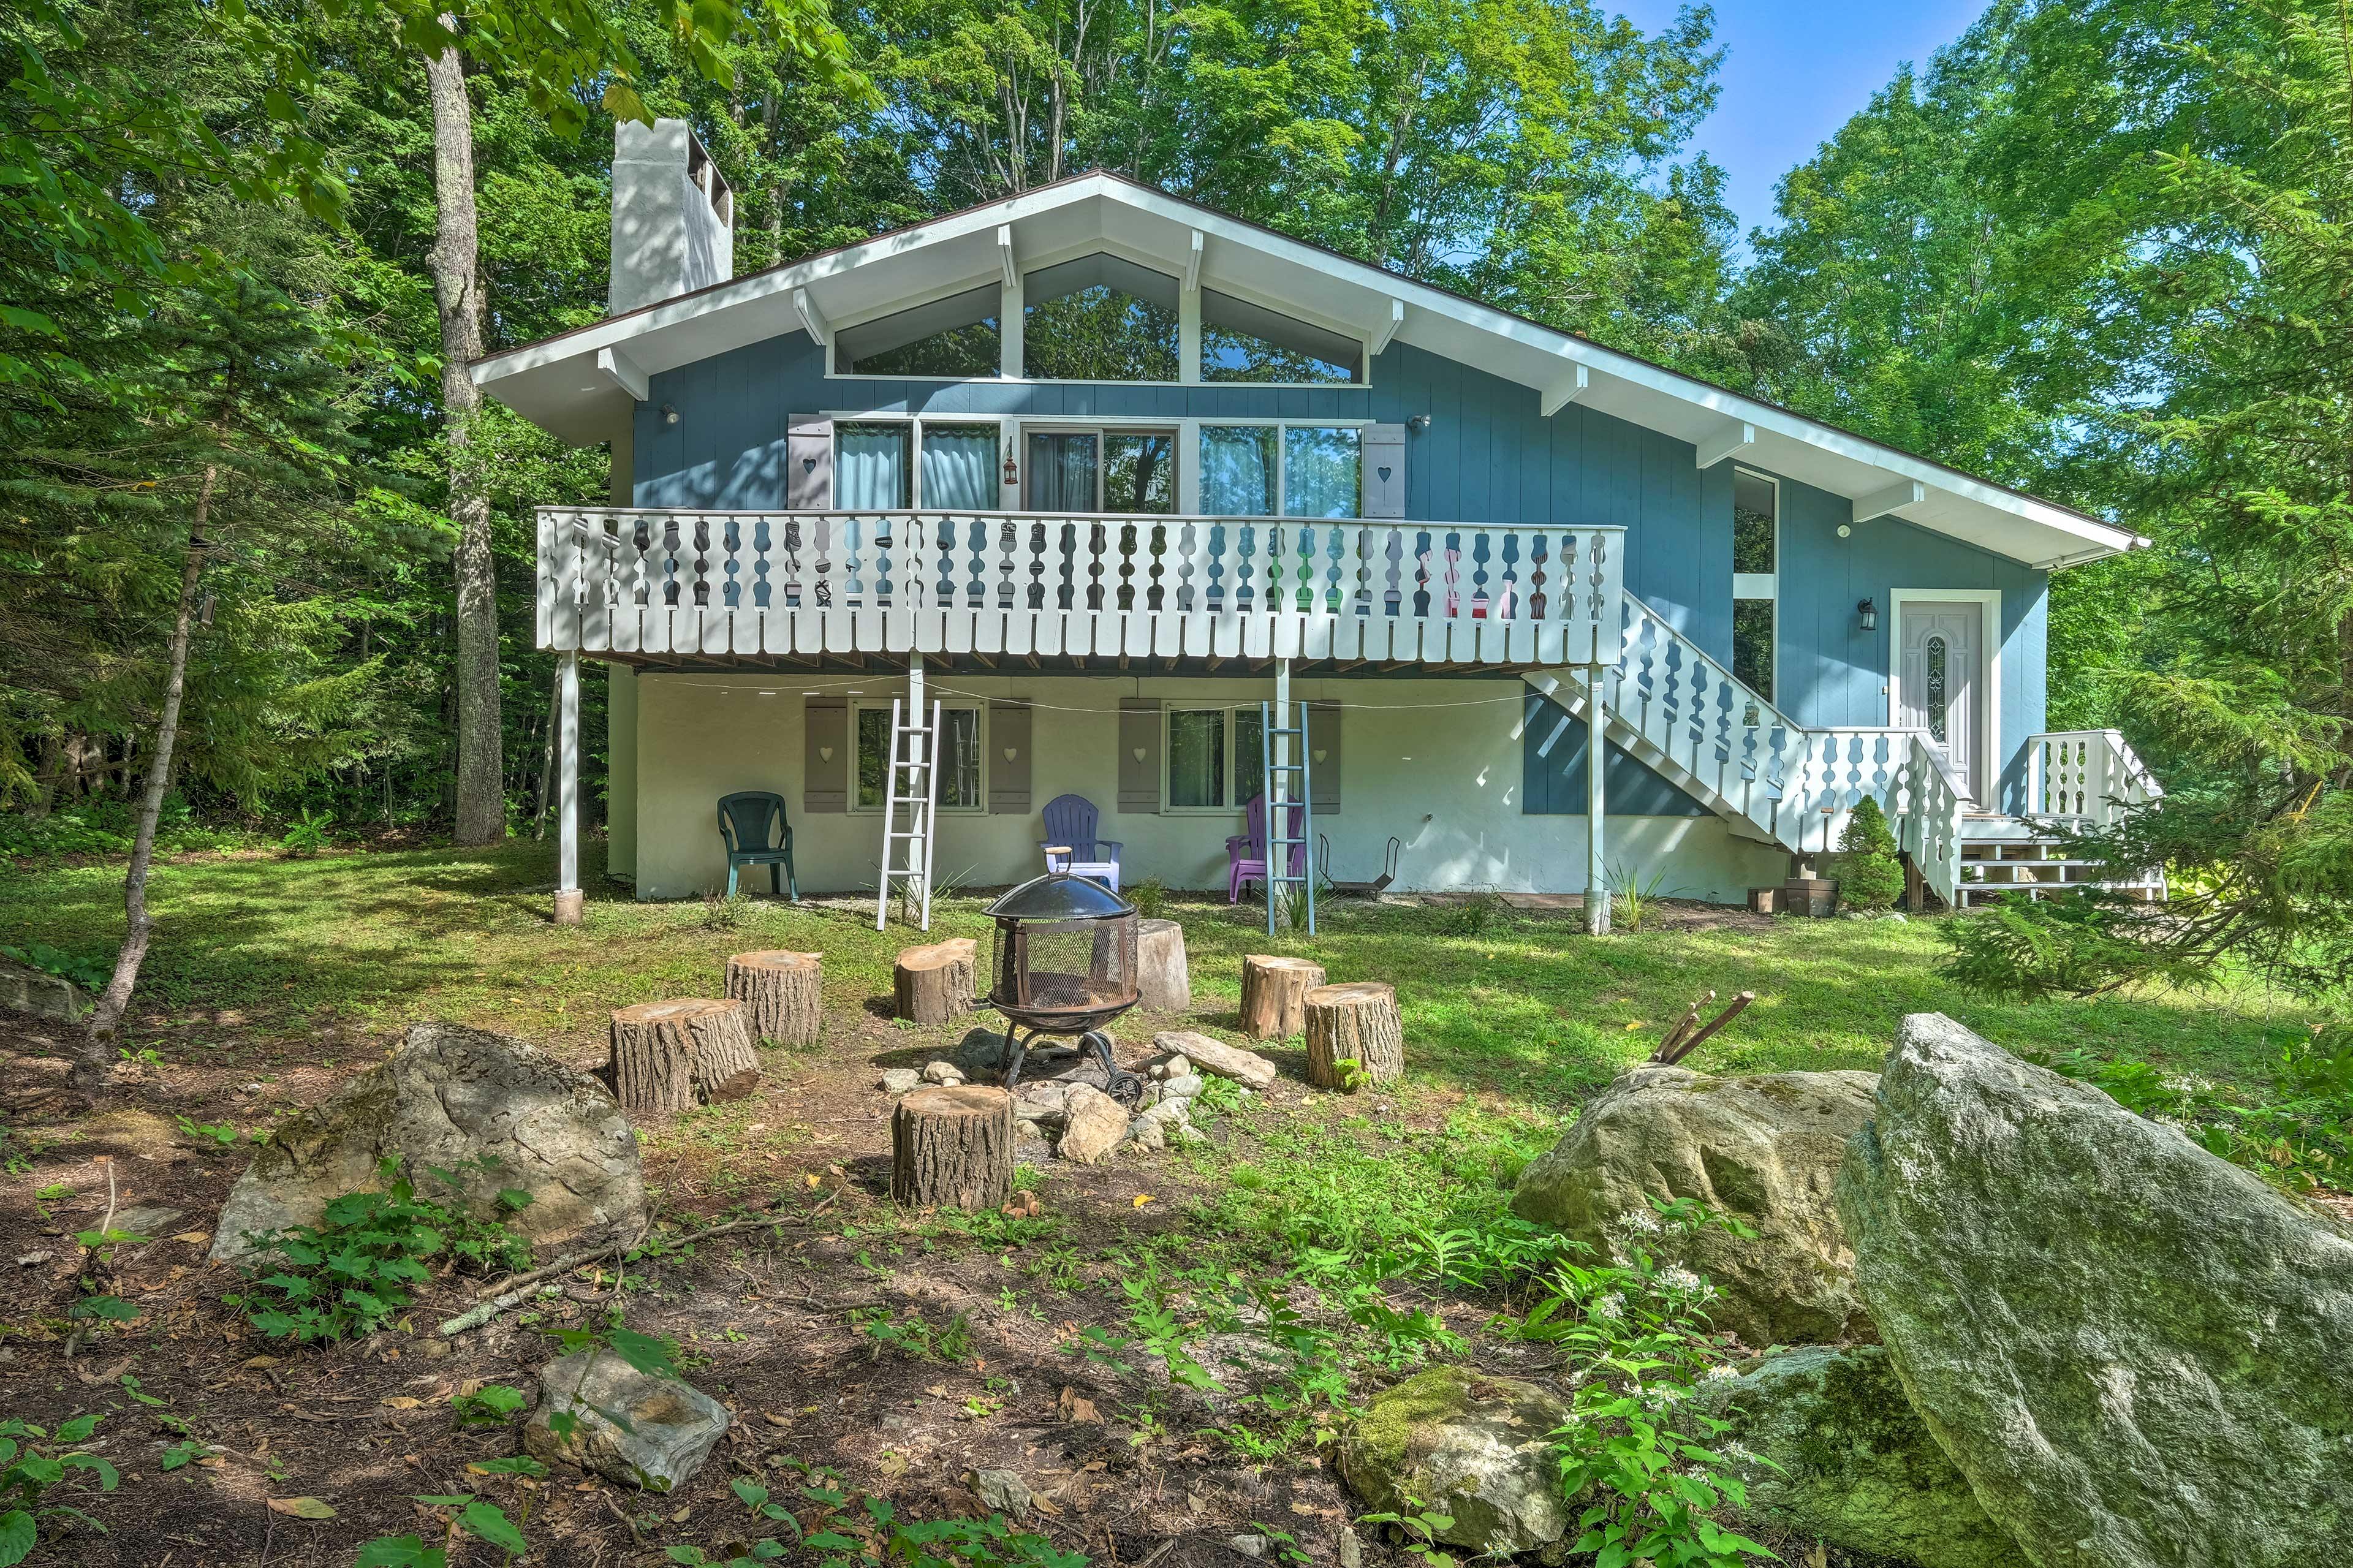 Your private ski chalet awaits at the Stratton Mountain vacation rental!